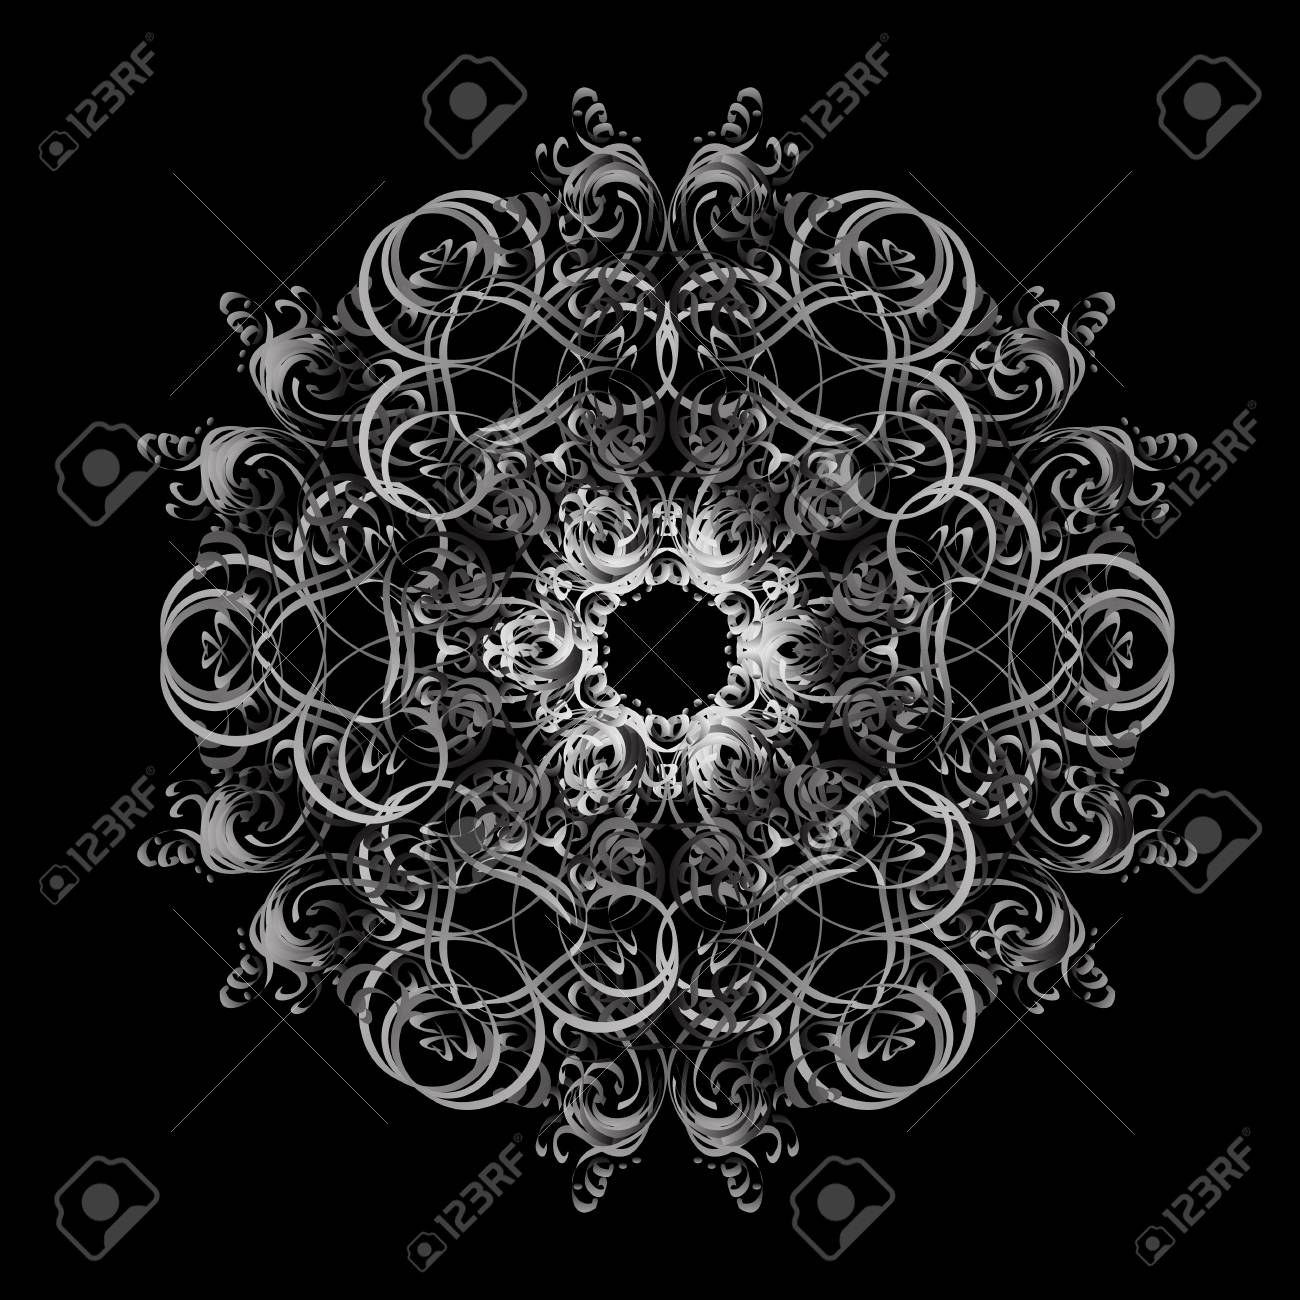 damask pattern background for sketch design in the style of baroque silver pattern on colorful